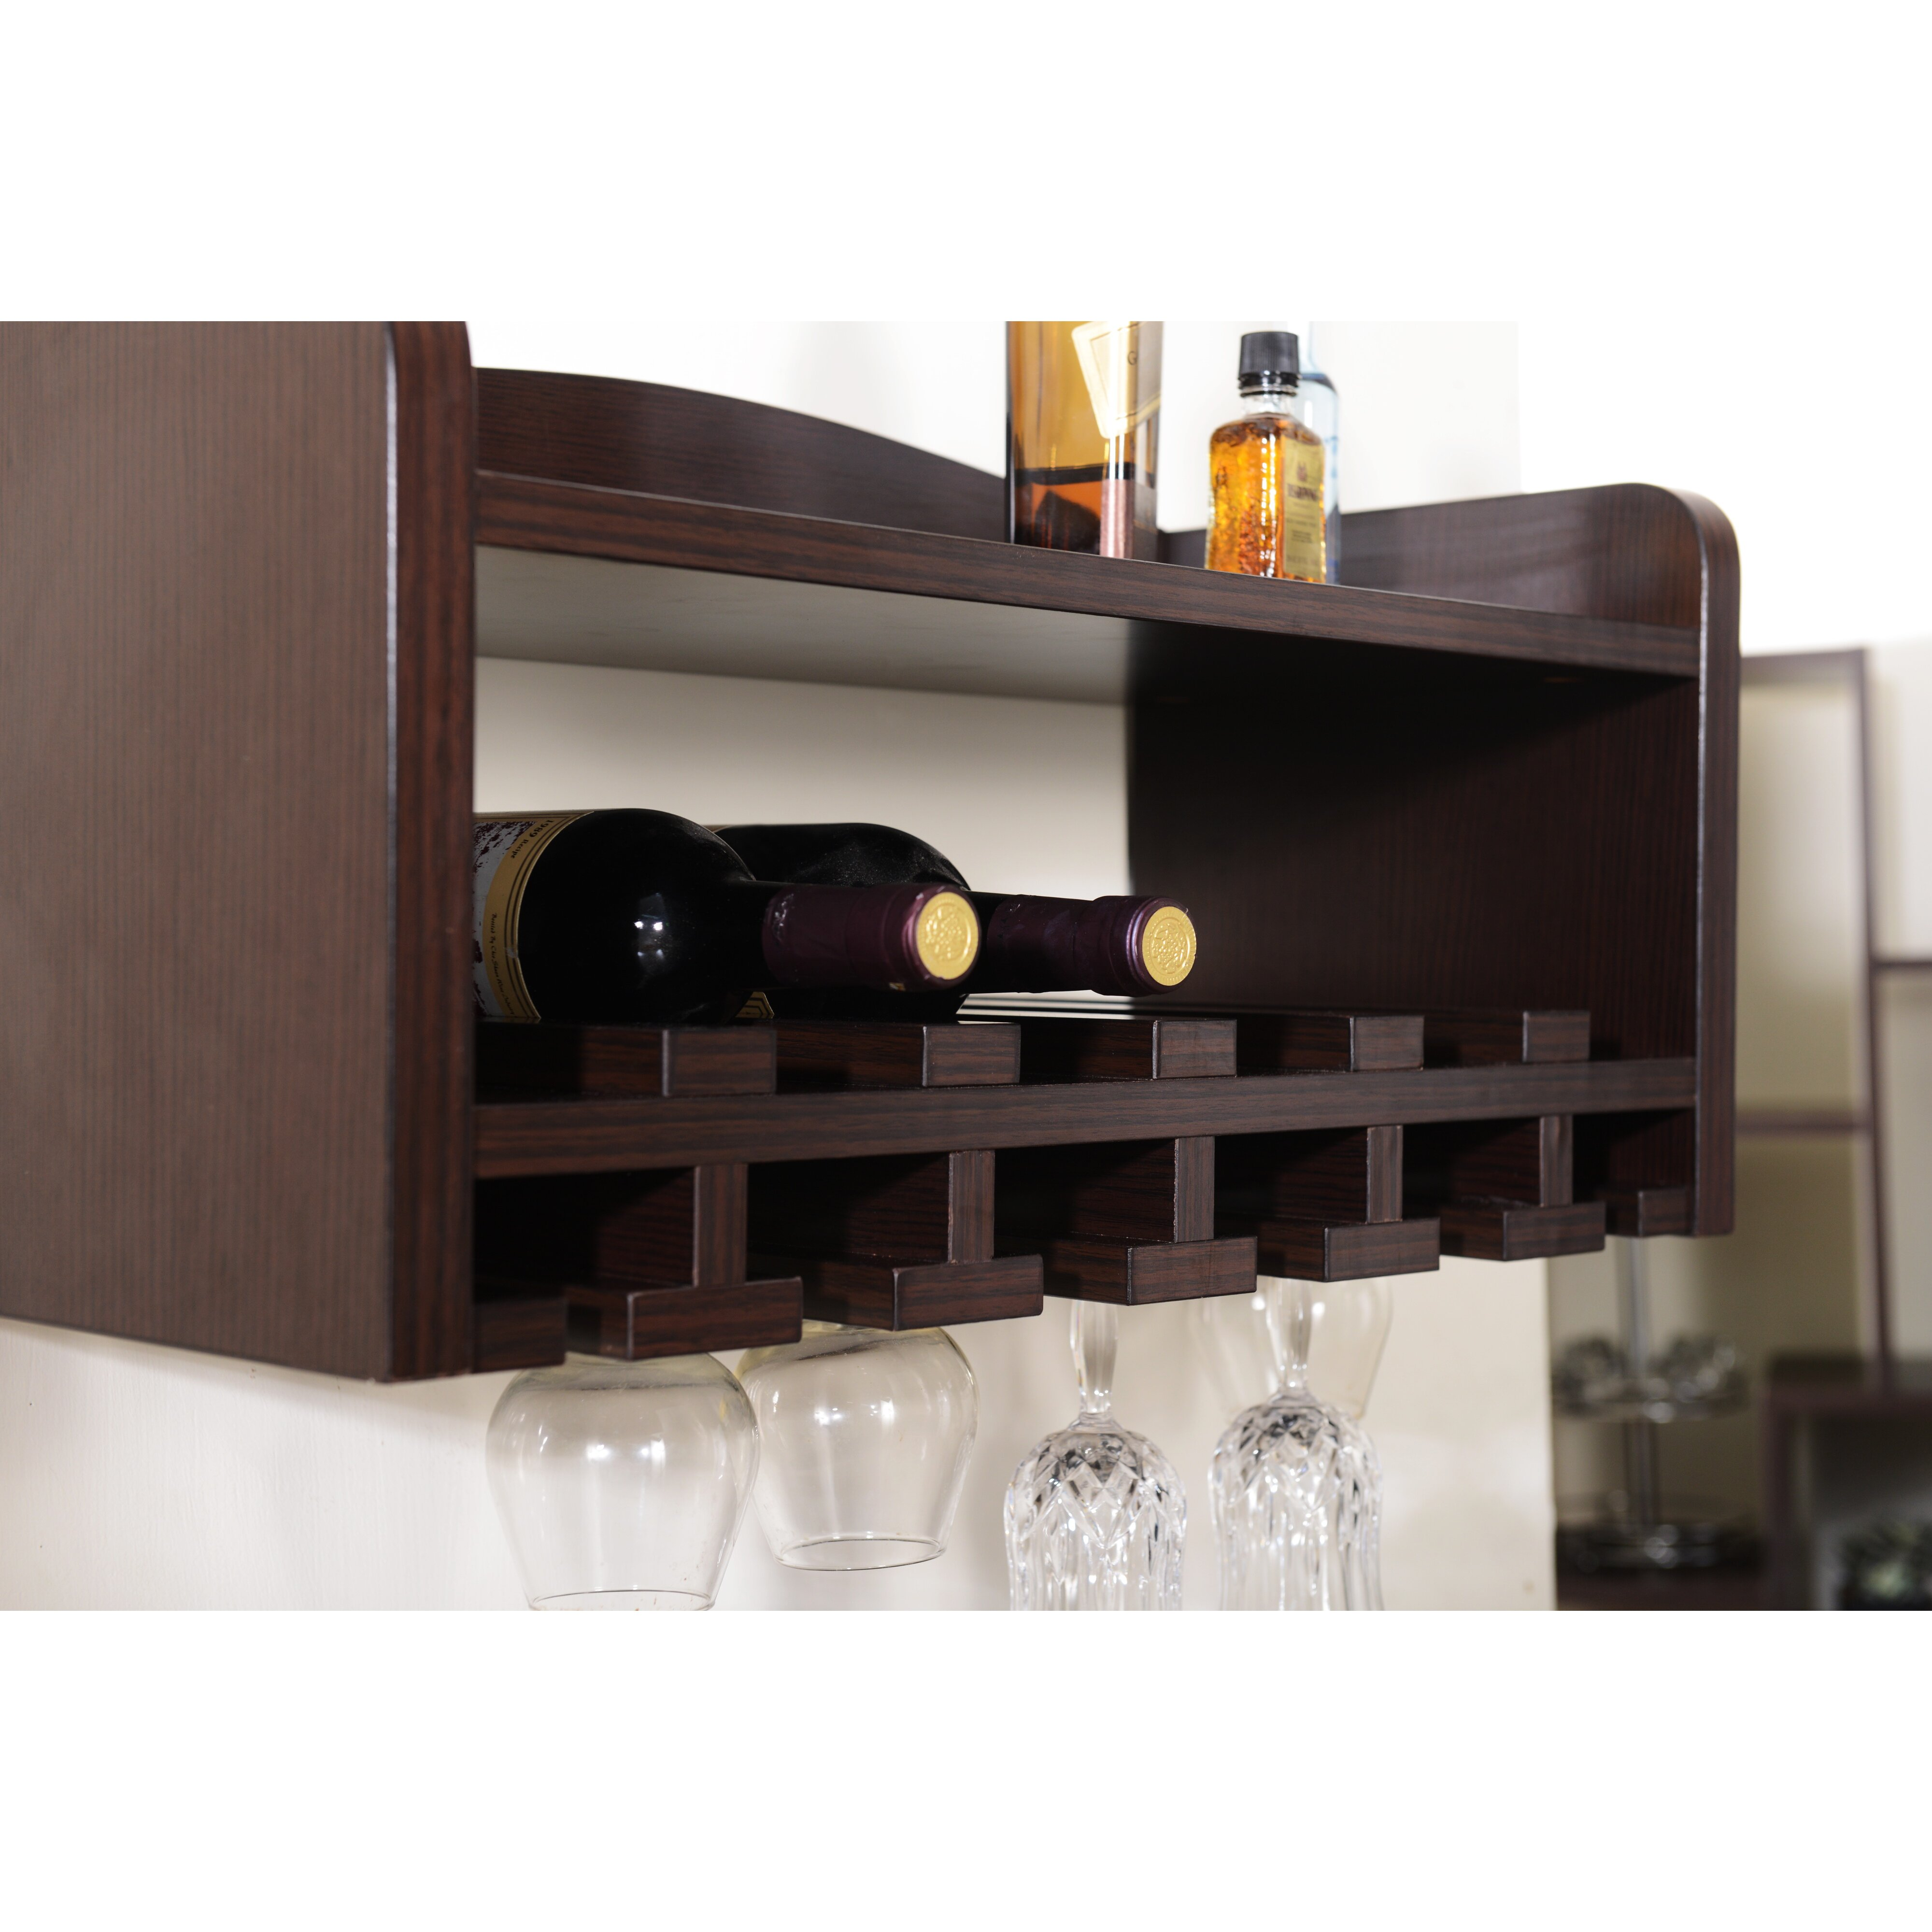 darby home co sullivan 6 bottle wall mounted wine rack reviews wayfair. Black Bedroom Furniture Sets. Home Design Ideas